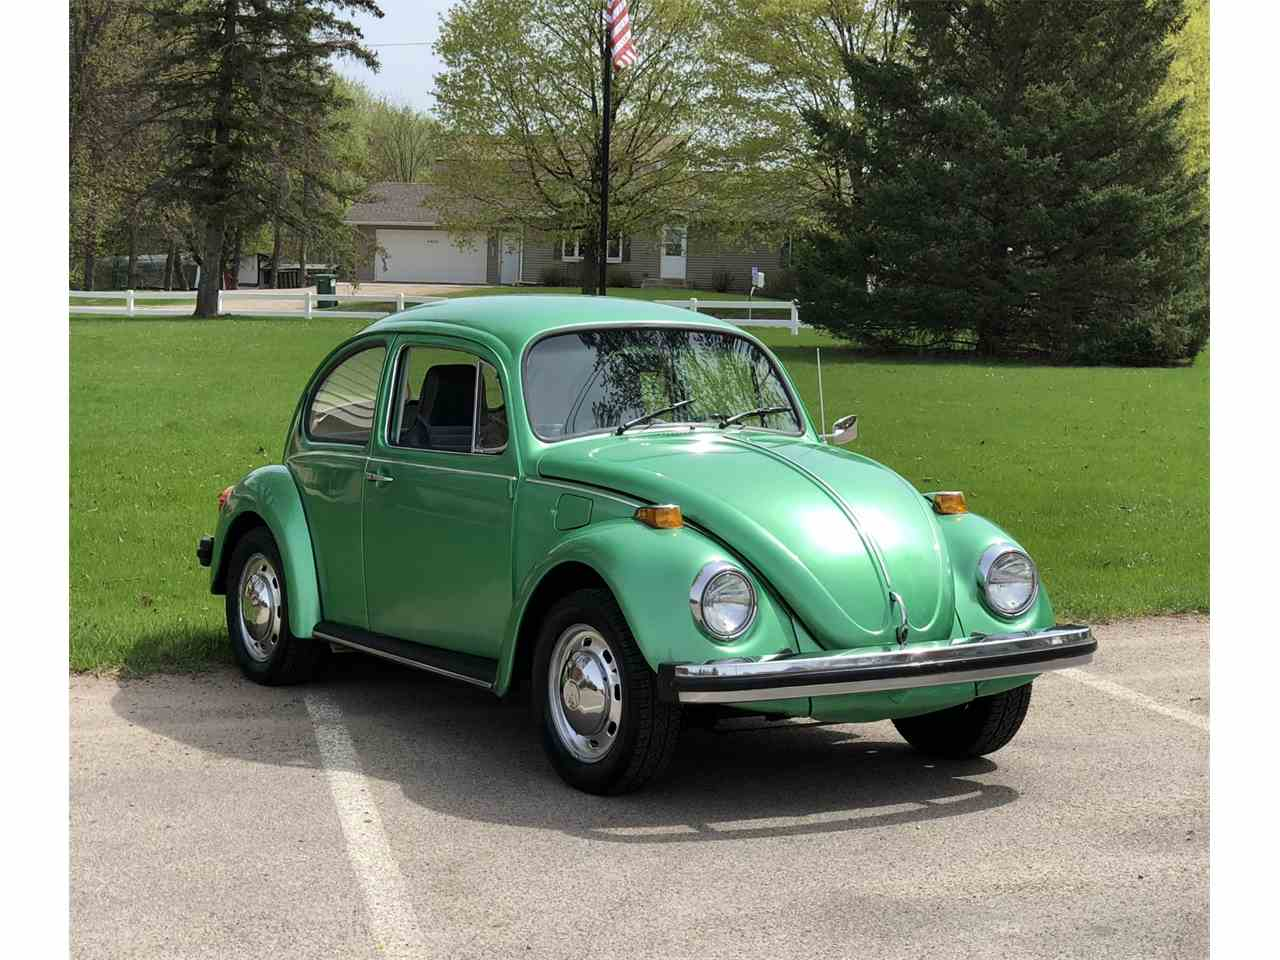 Large Picture of '74 Volkswagen Beetle located in Maple Lake Minnesota - $9,950.00 - NESE